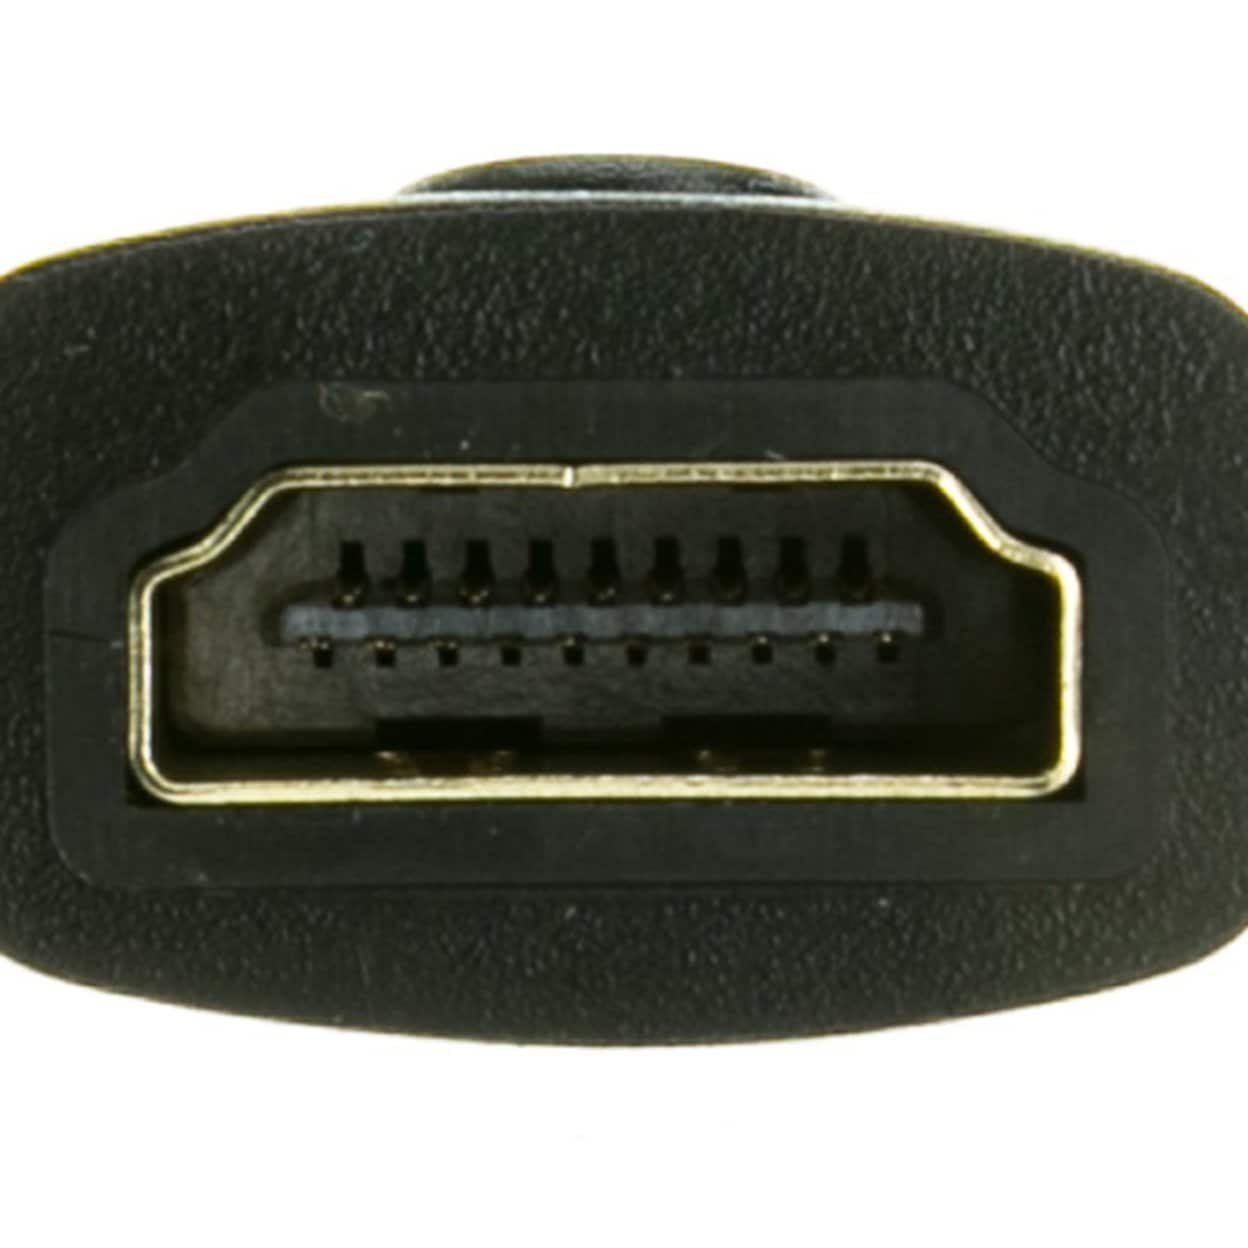 HDMI to Mini HDMI Adapter Type C 50 Pack HDMI Female to Mini HDMI Male GOWOS